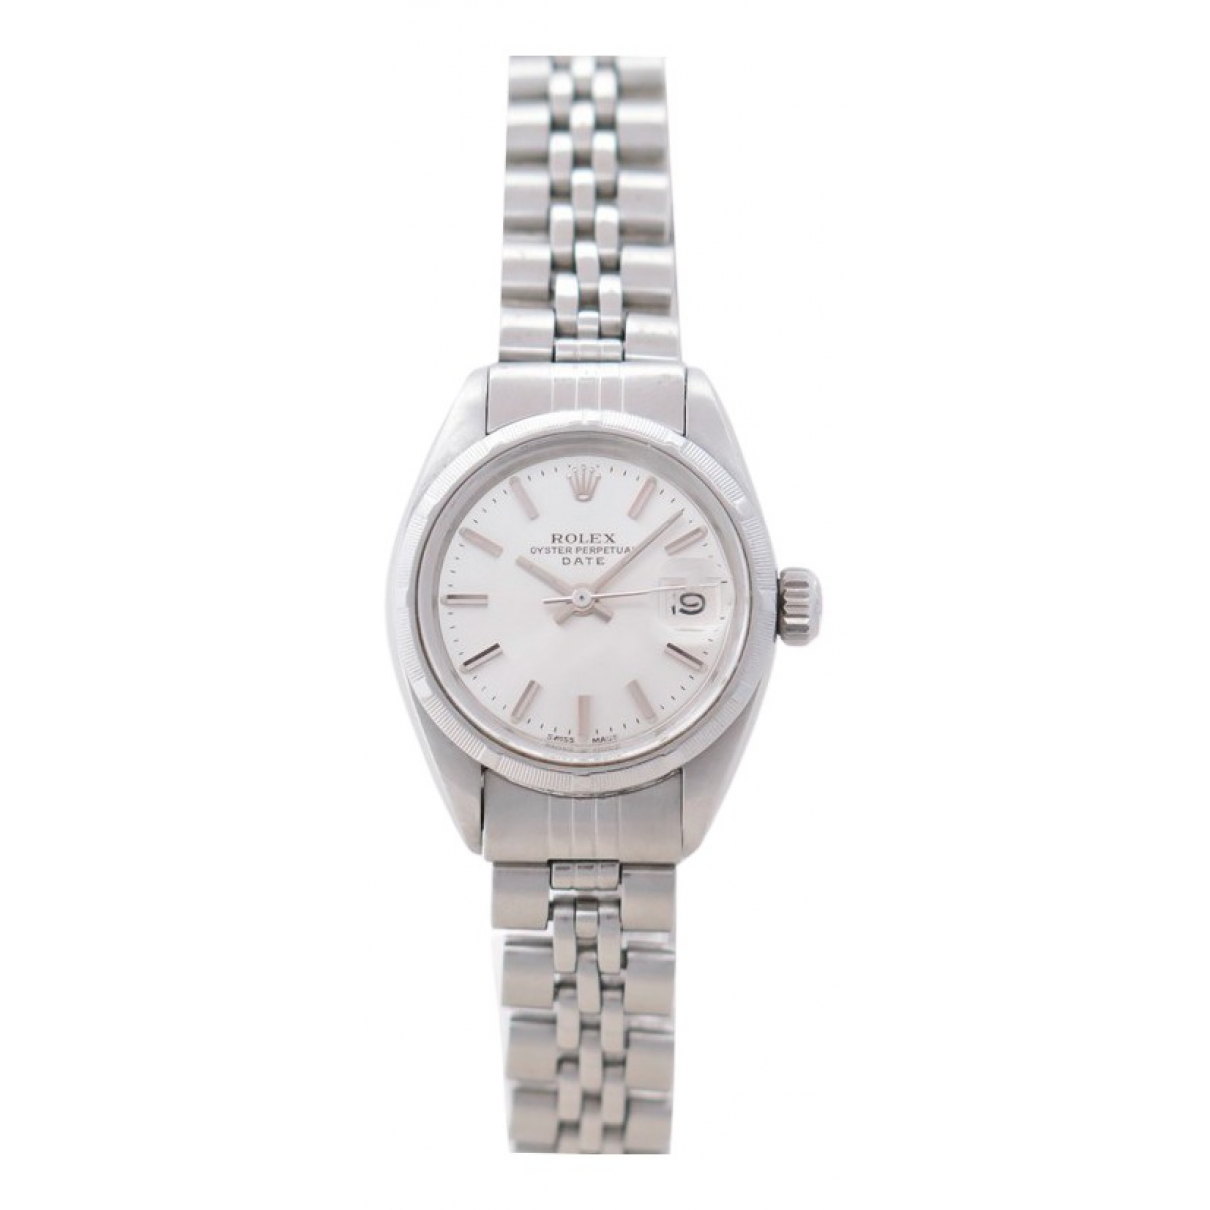 Rolex Lady Oyster Perpetual 24mm Uhr in  Silber Stahl